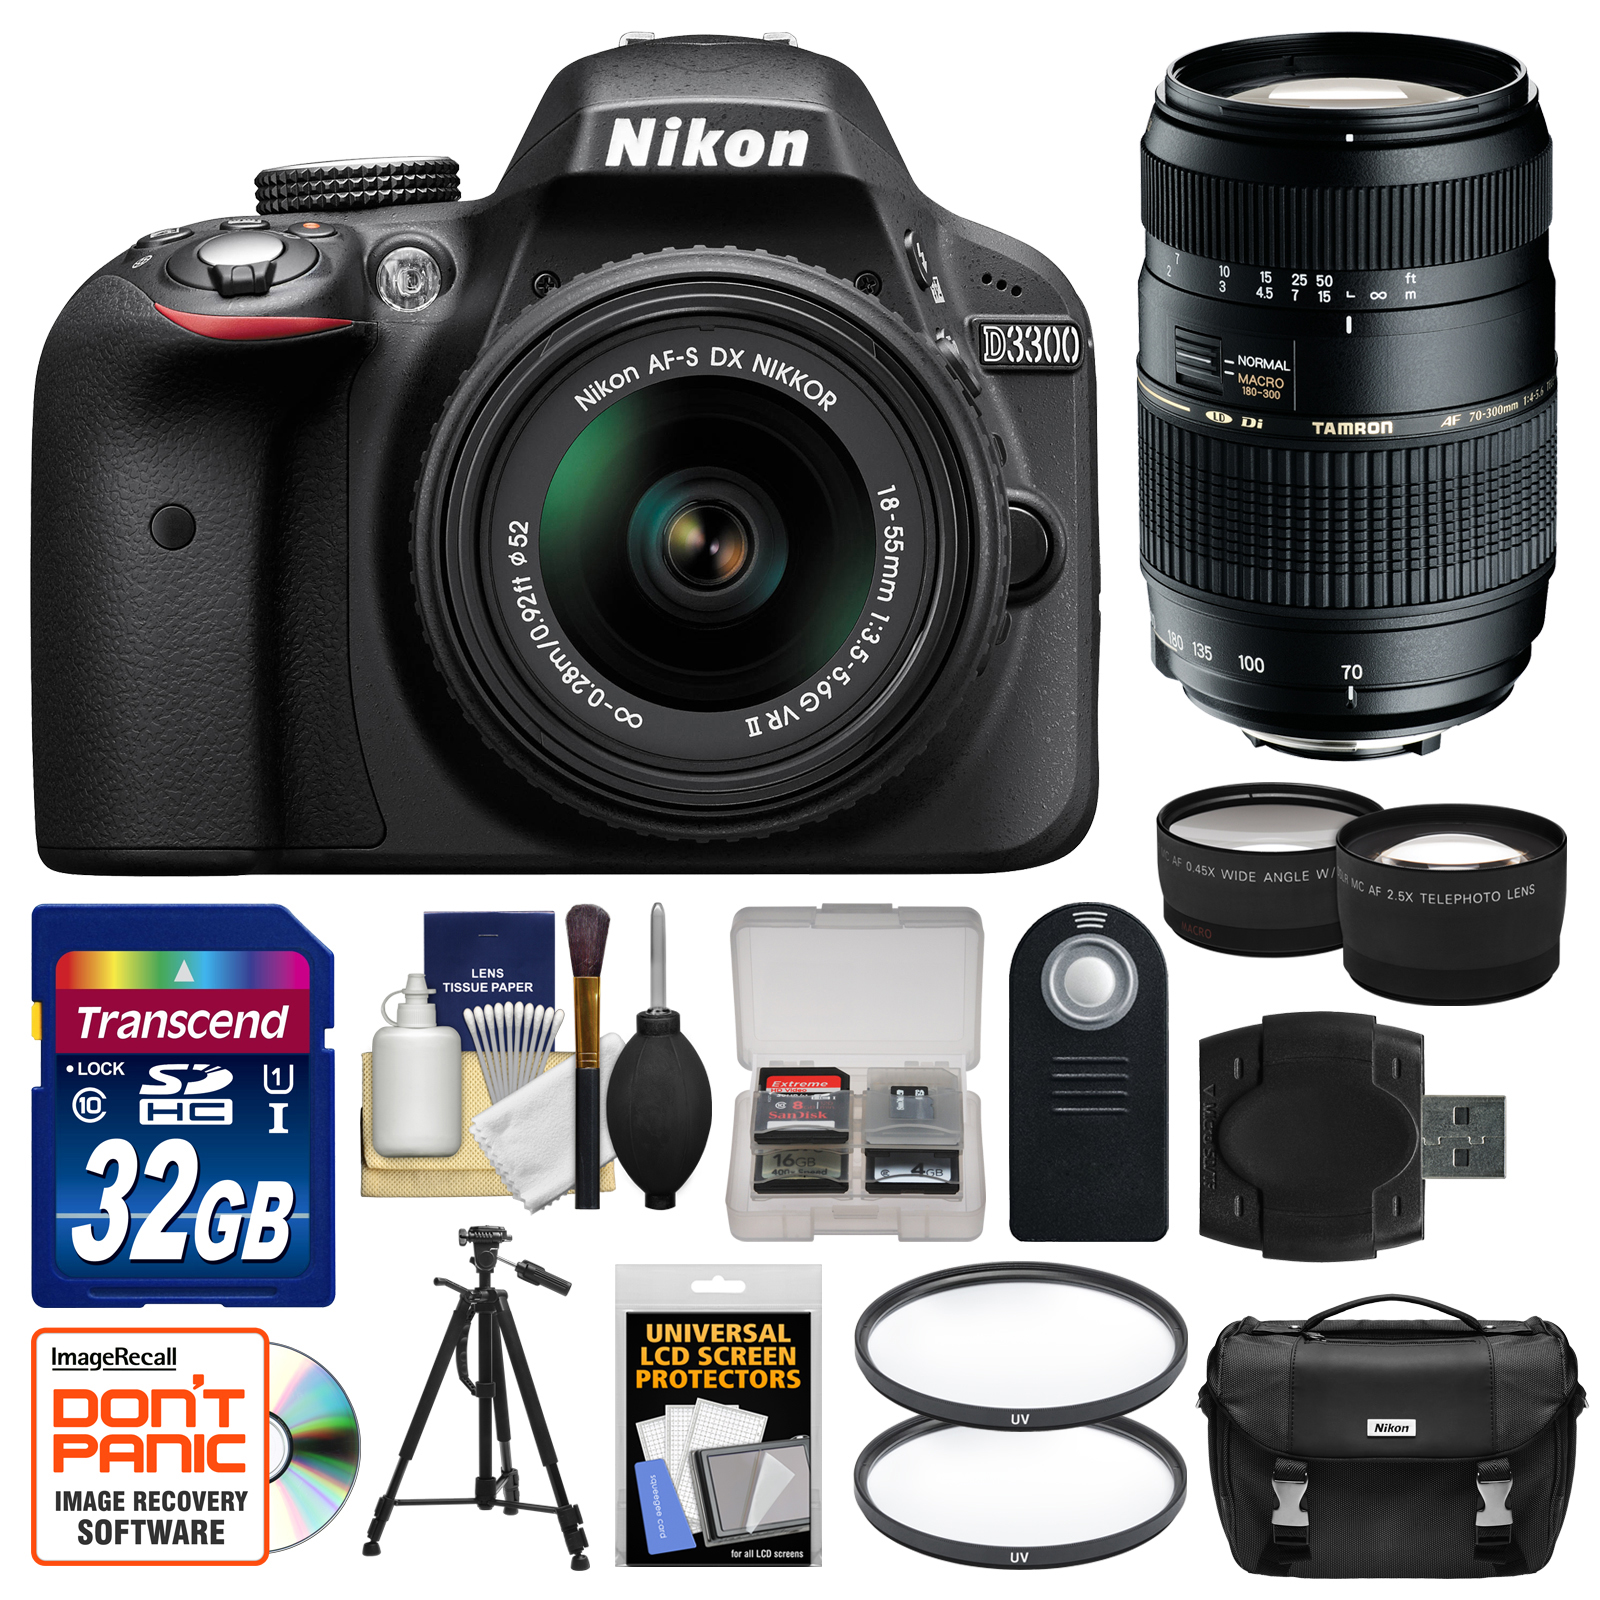 Nikon D3300 Digital SLR Camera & 18-55mm VR DX II AF-S Lens (Black) Factory Refurbished with Tamron 70-300mm... by Nikon